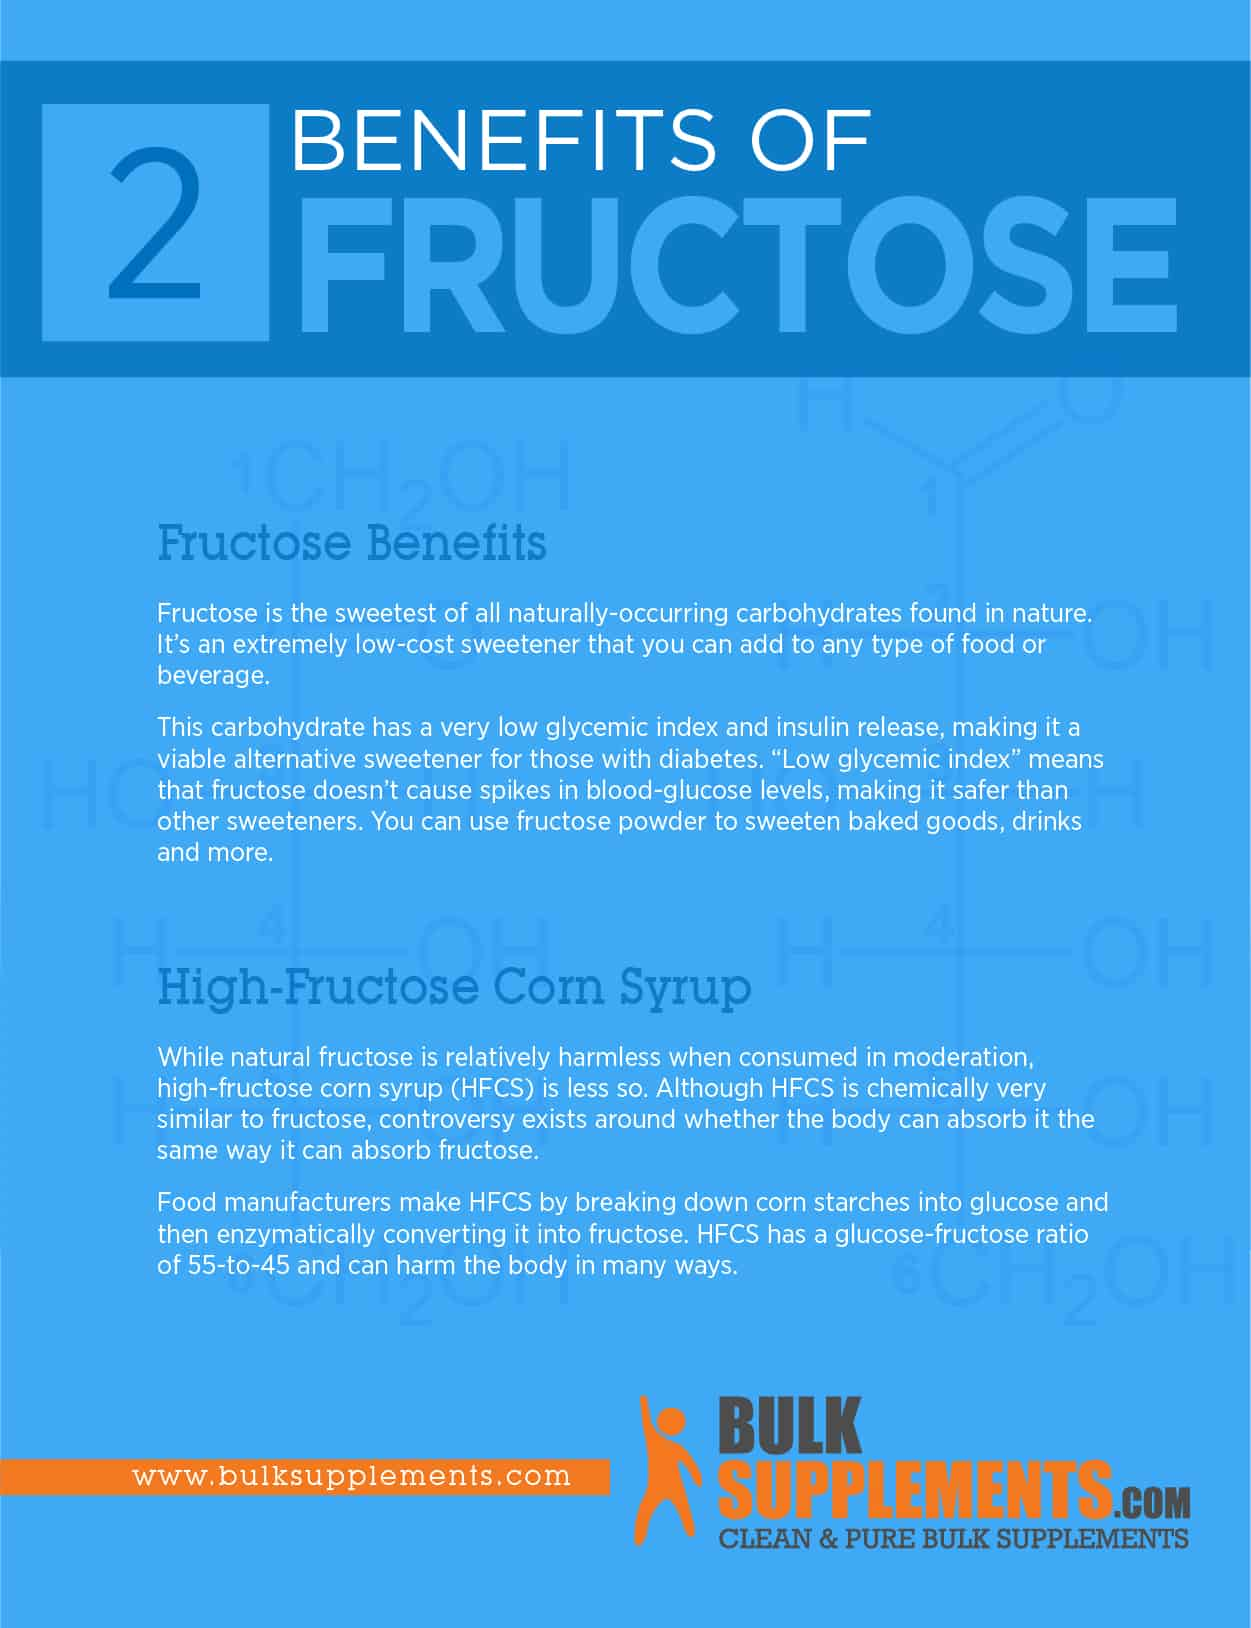 Fructose Benefits